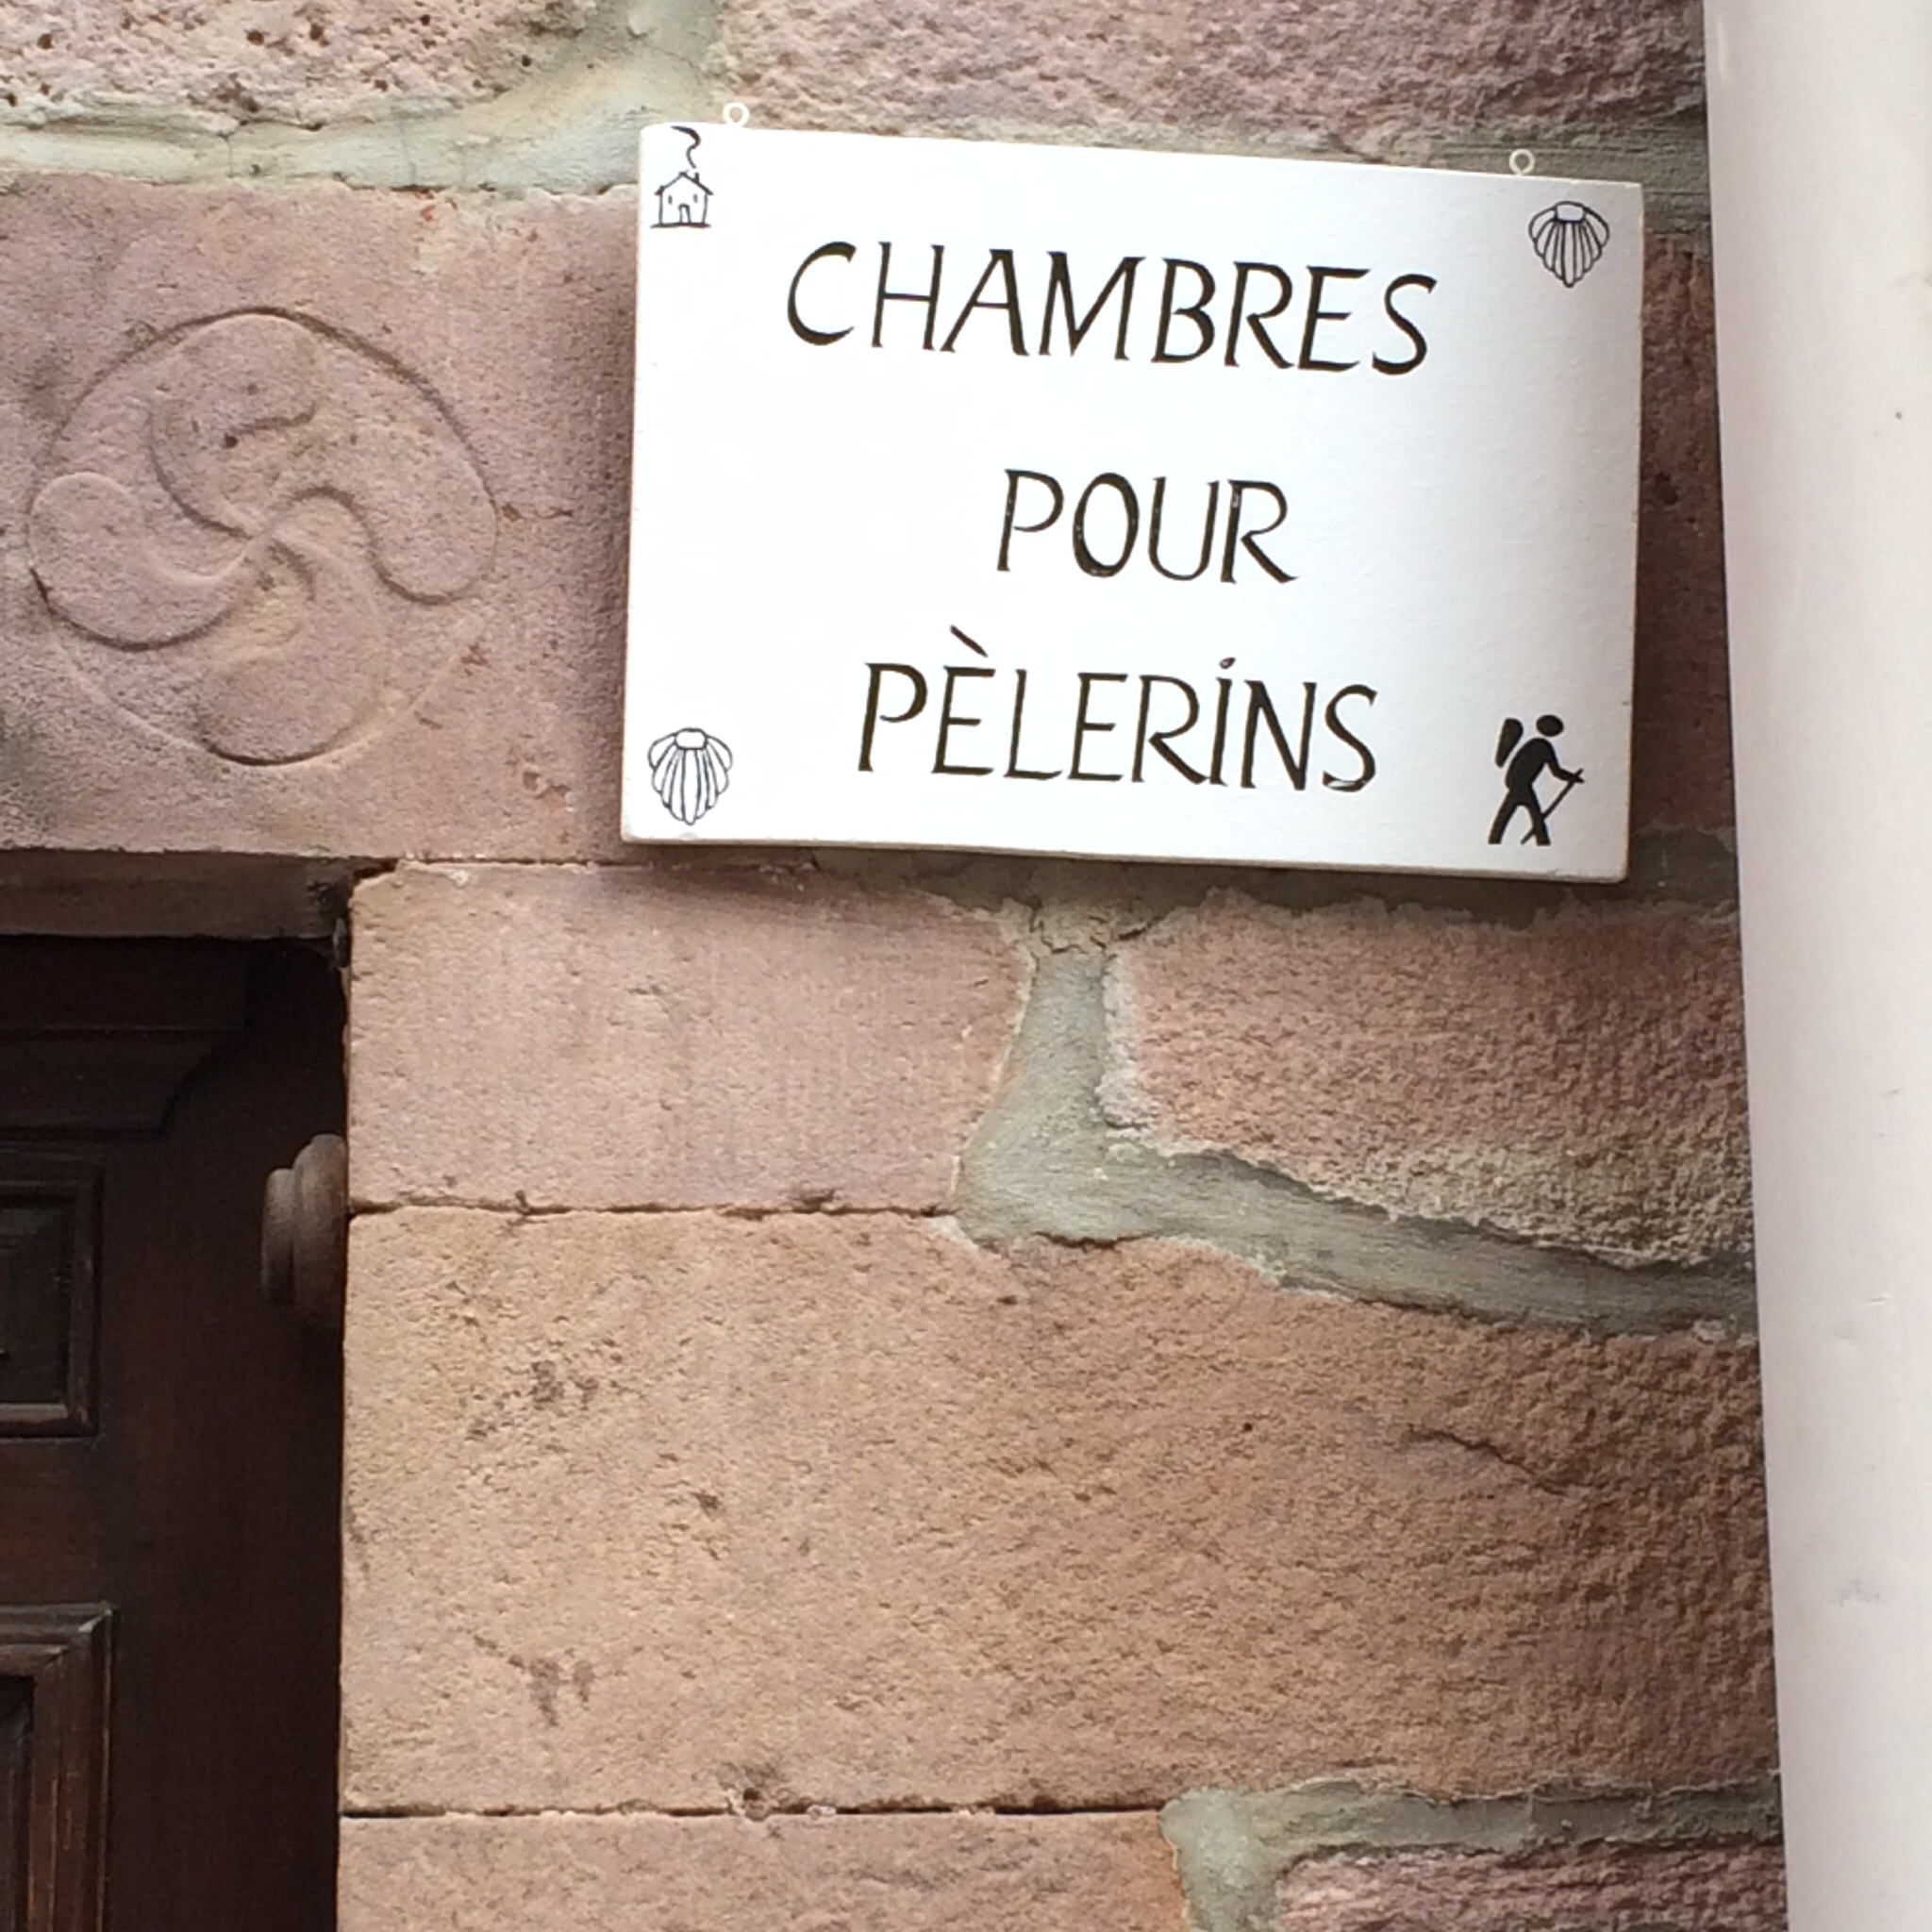 This places advertises rooms to rent for pilgrims.